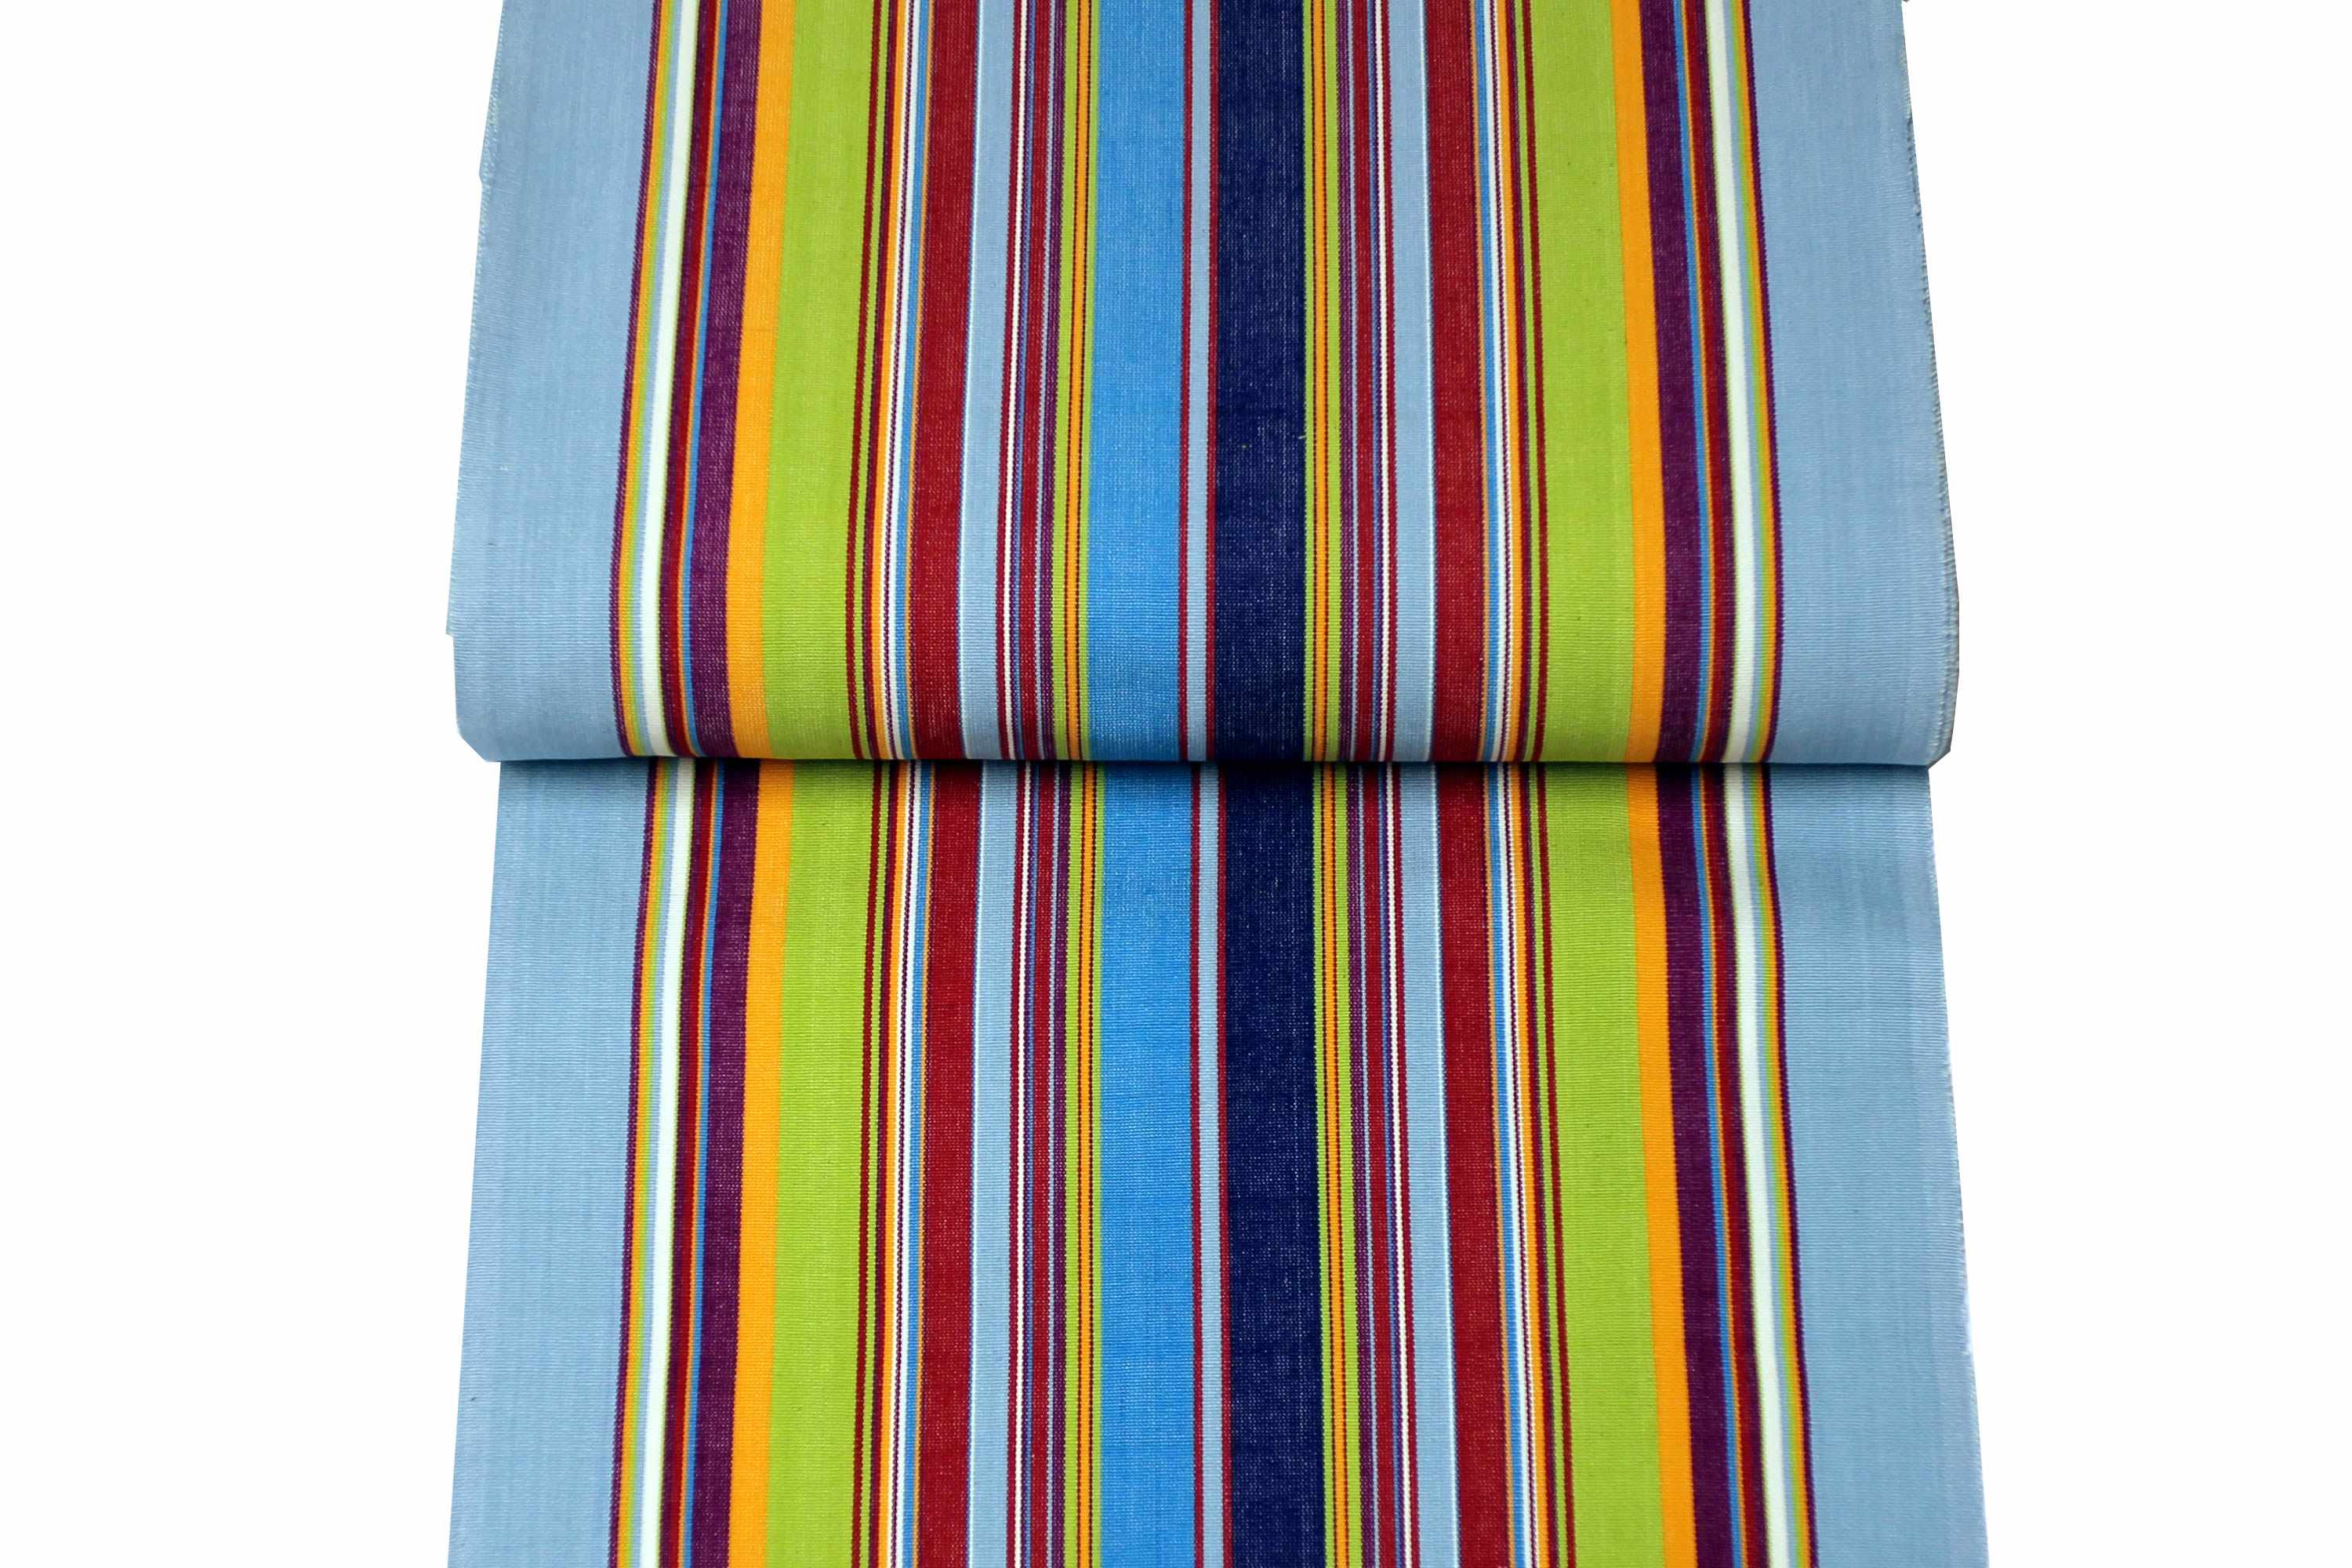 pale blue deckchair canvas deckchair fabrics striped deck chair fabrics flamenco stripes deckchair